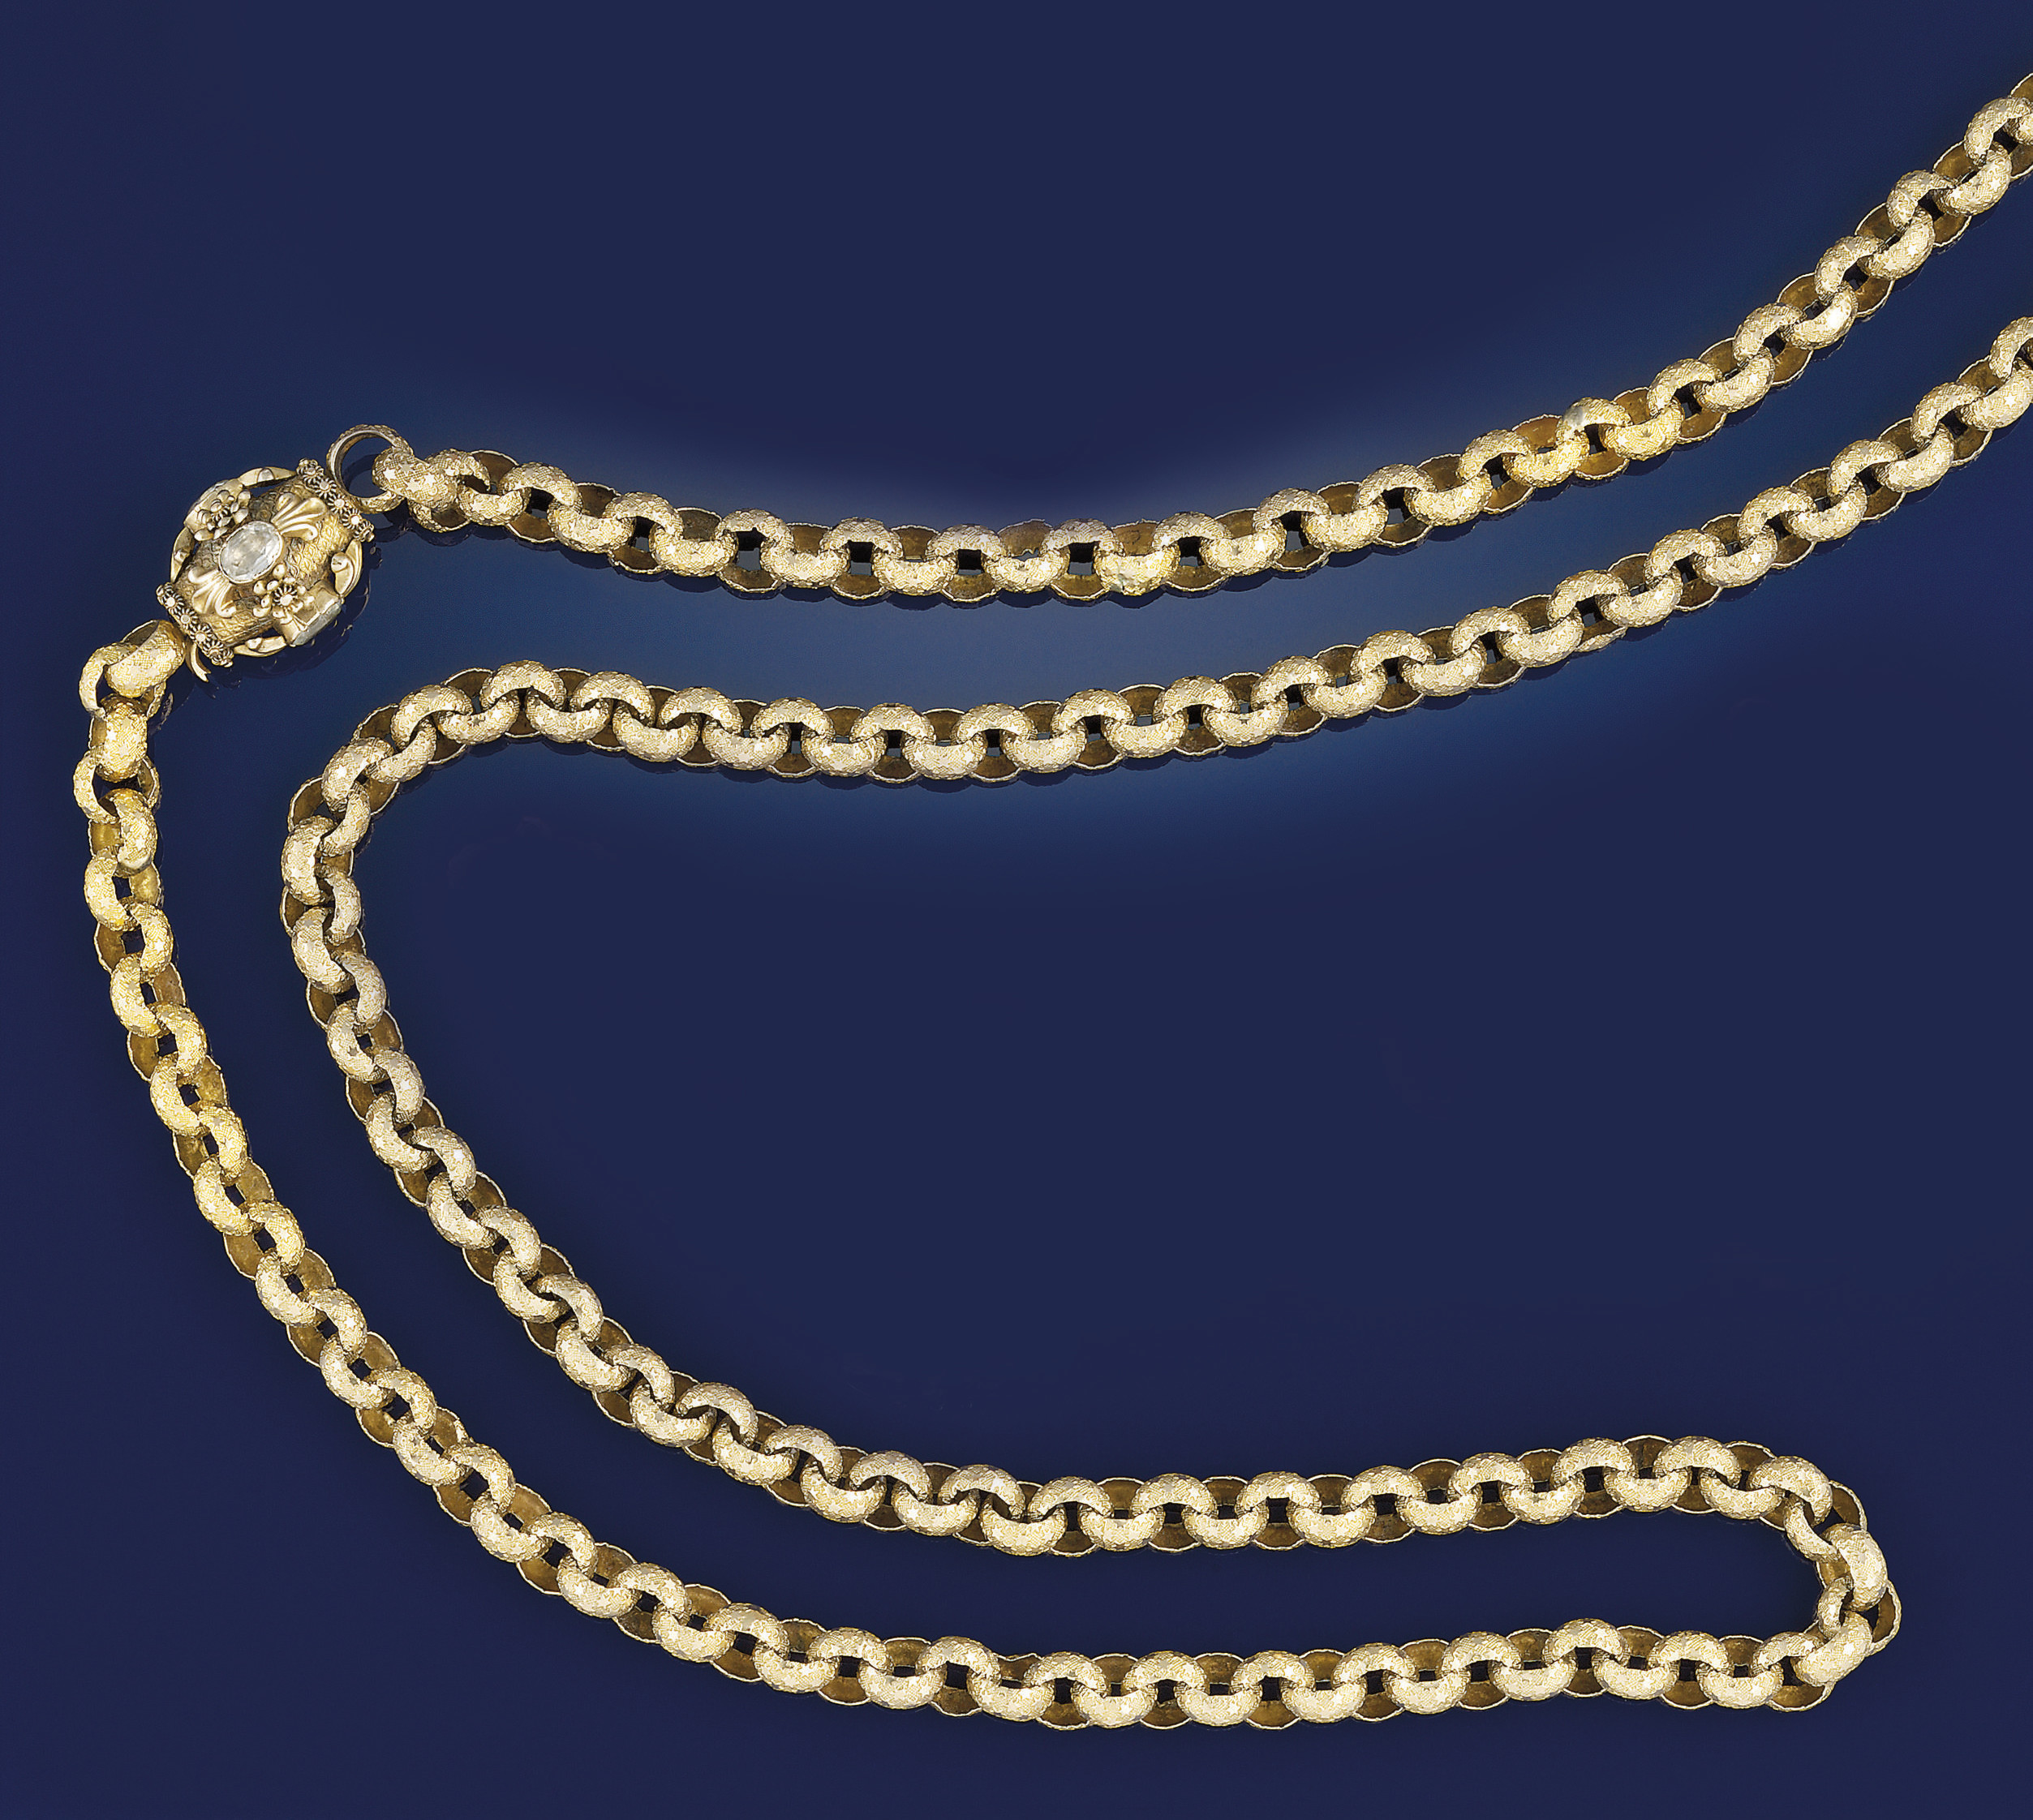 An early 19th century gold gua